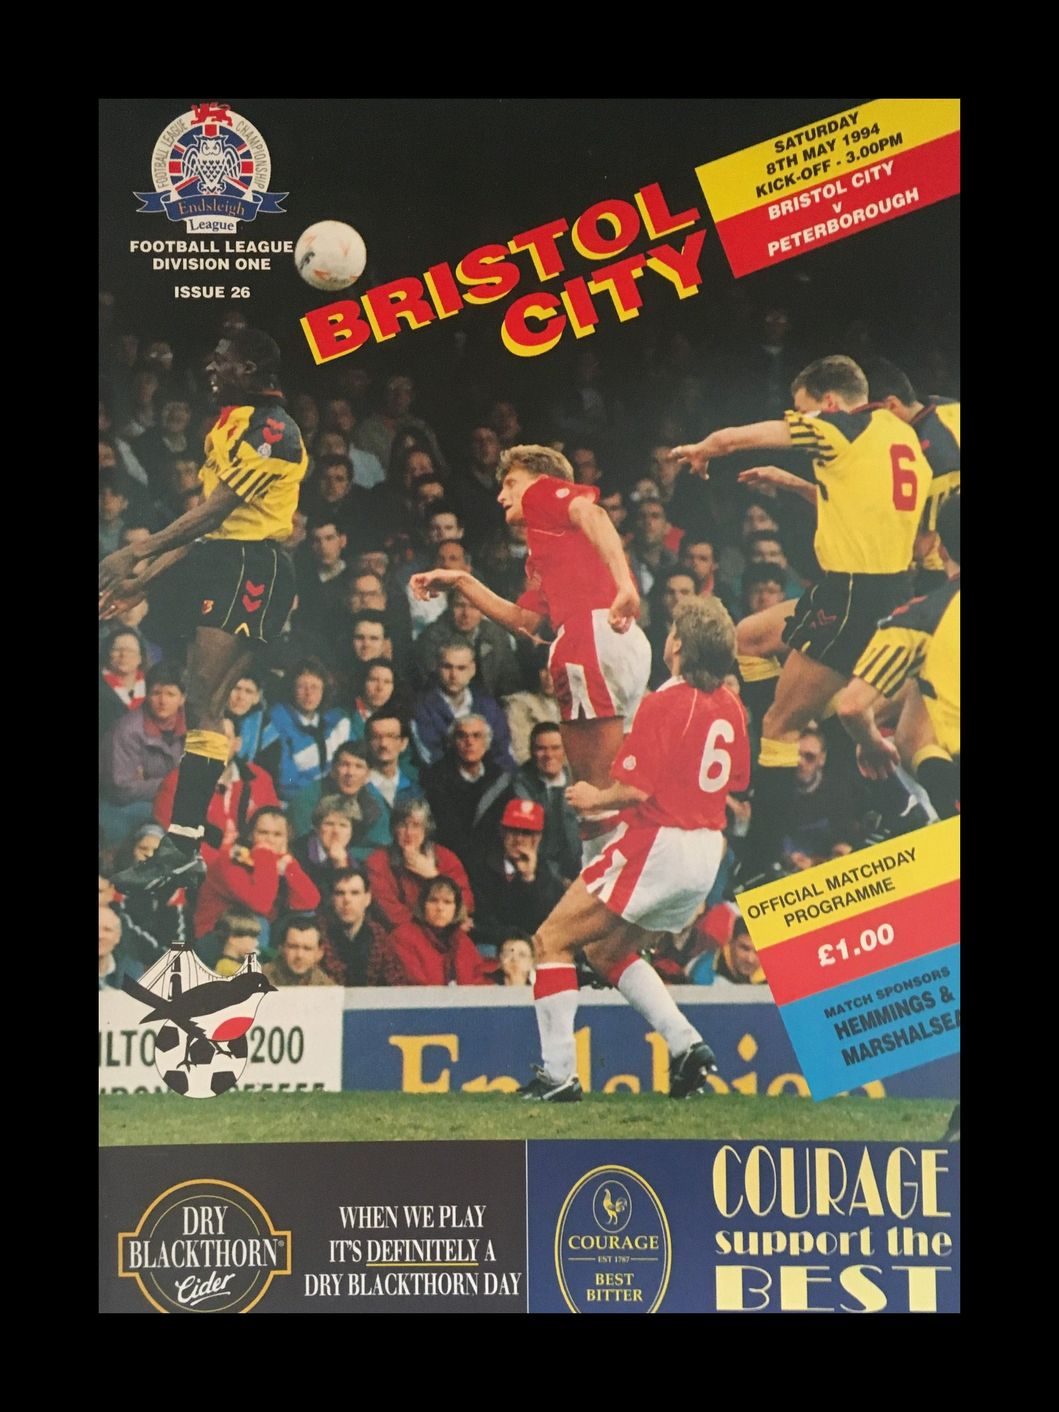 Bristol City v Peterborough United 08-05-1994 Programme